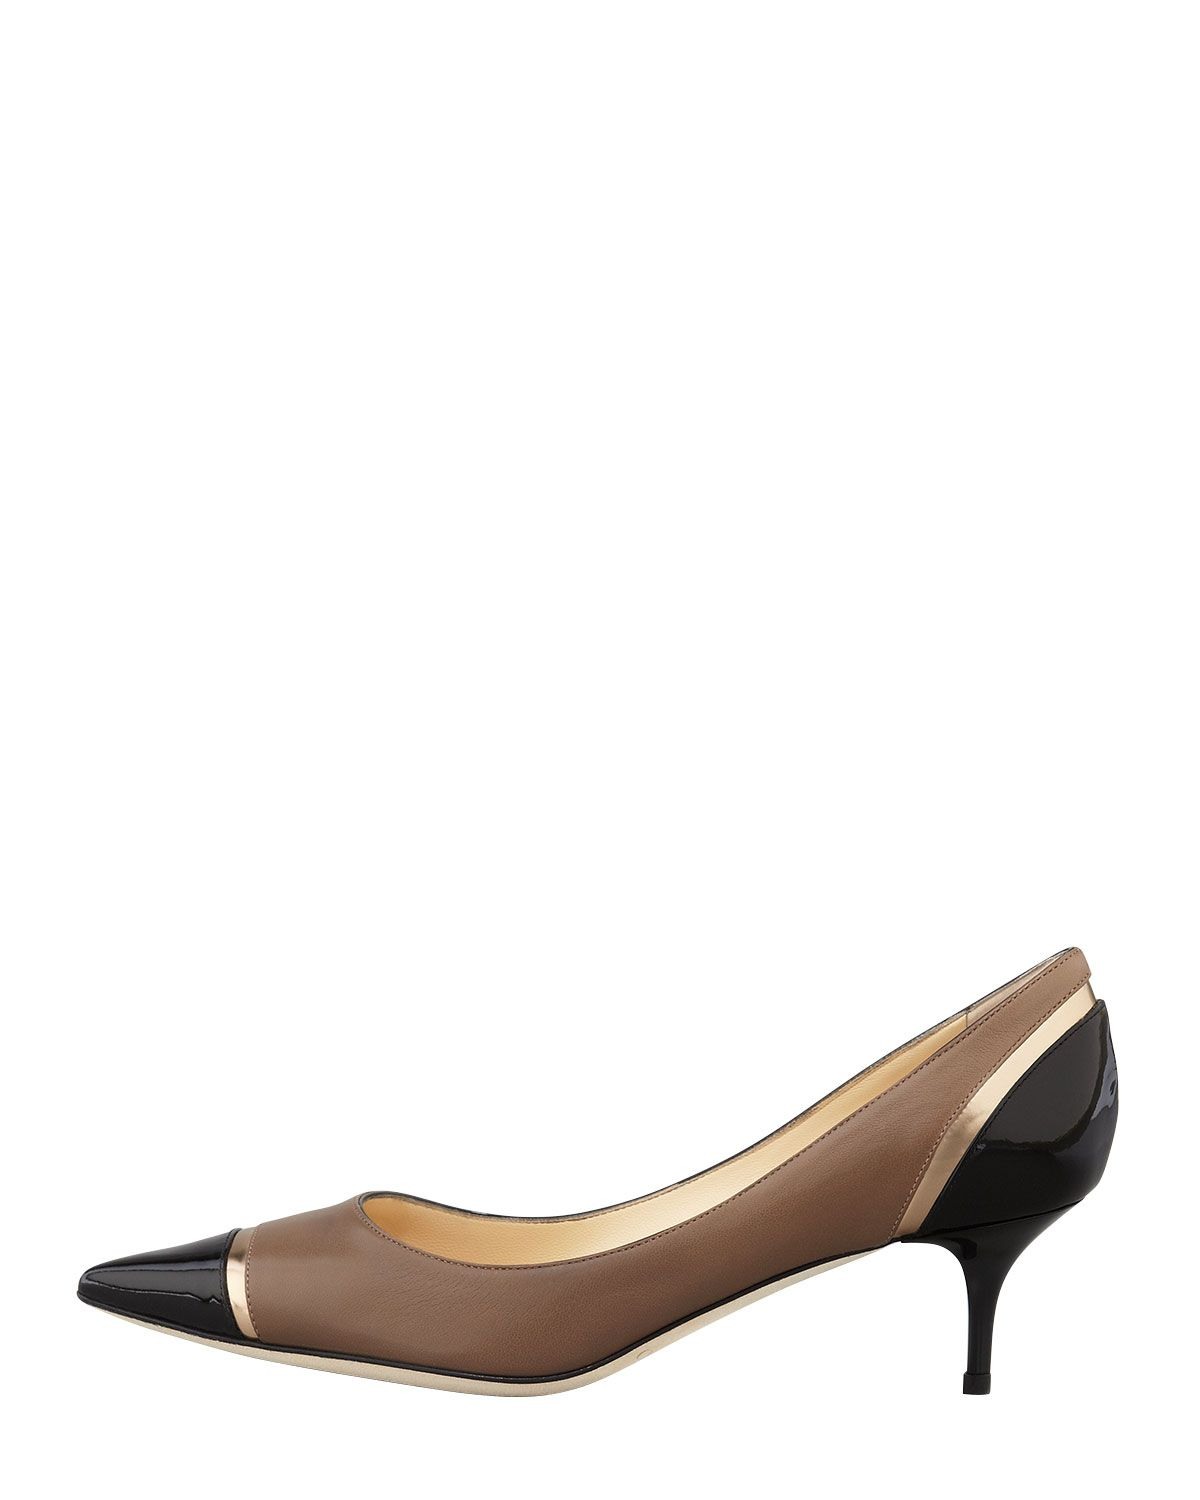 e44b7bc46d9d5 jimmy choo low heels | Jimmy Choo Womens Taupe Leap Mixed Media Pointed Toe  Low-Heel Pump